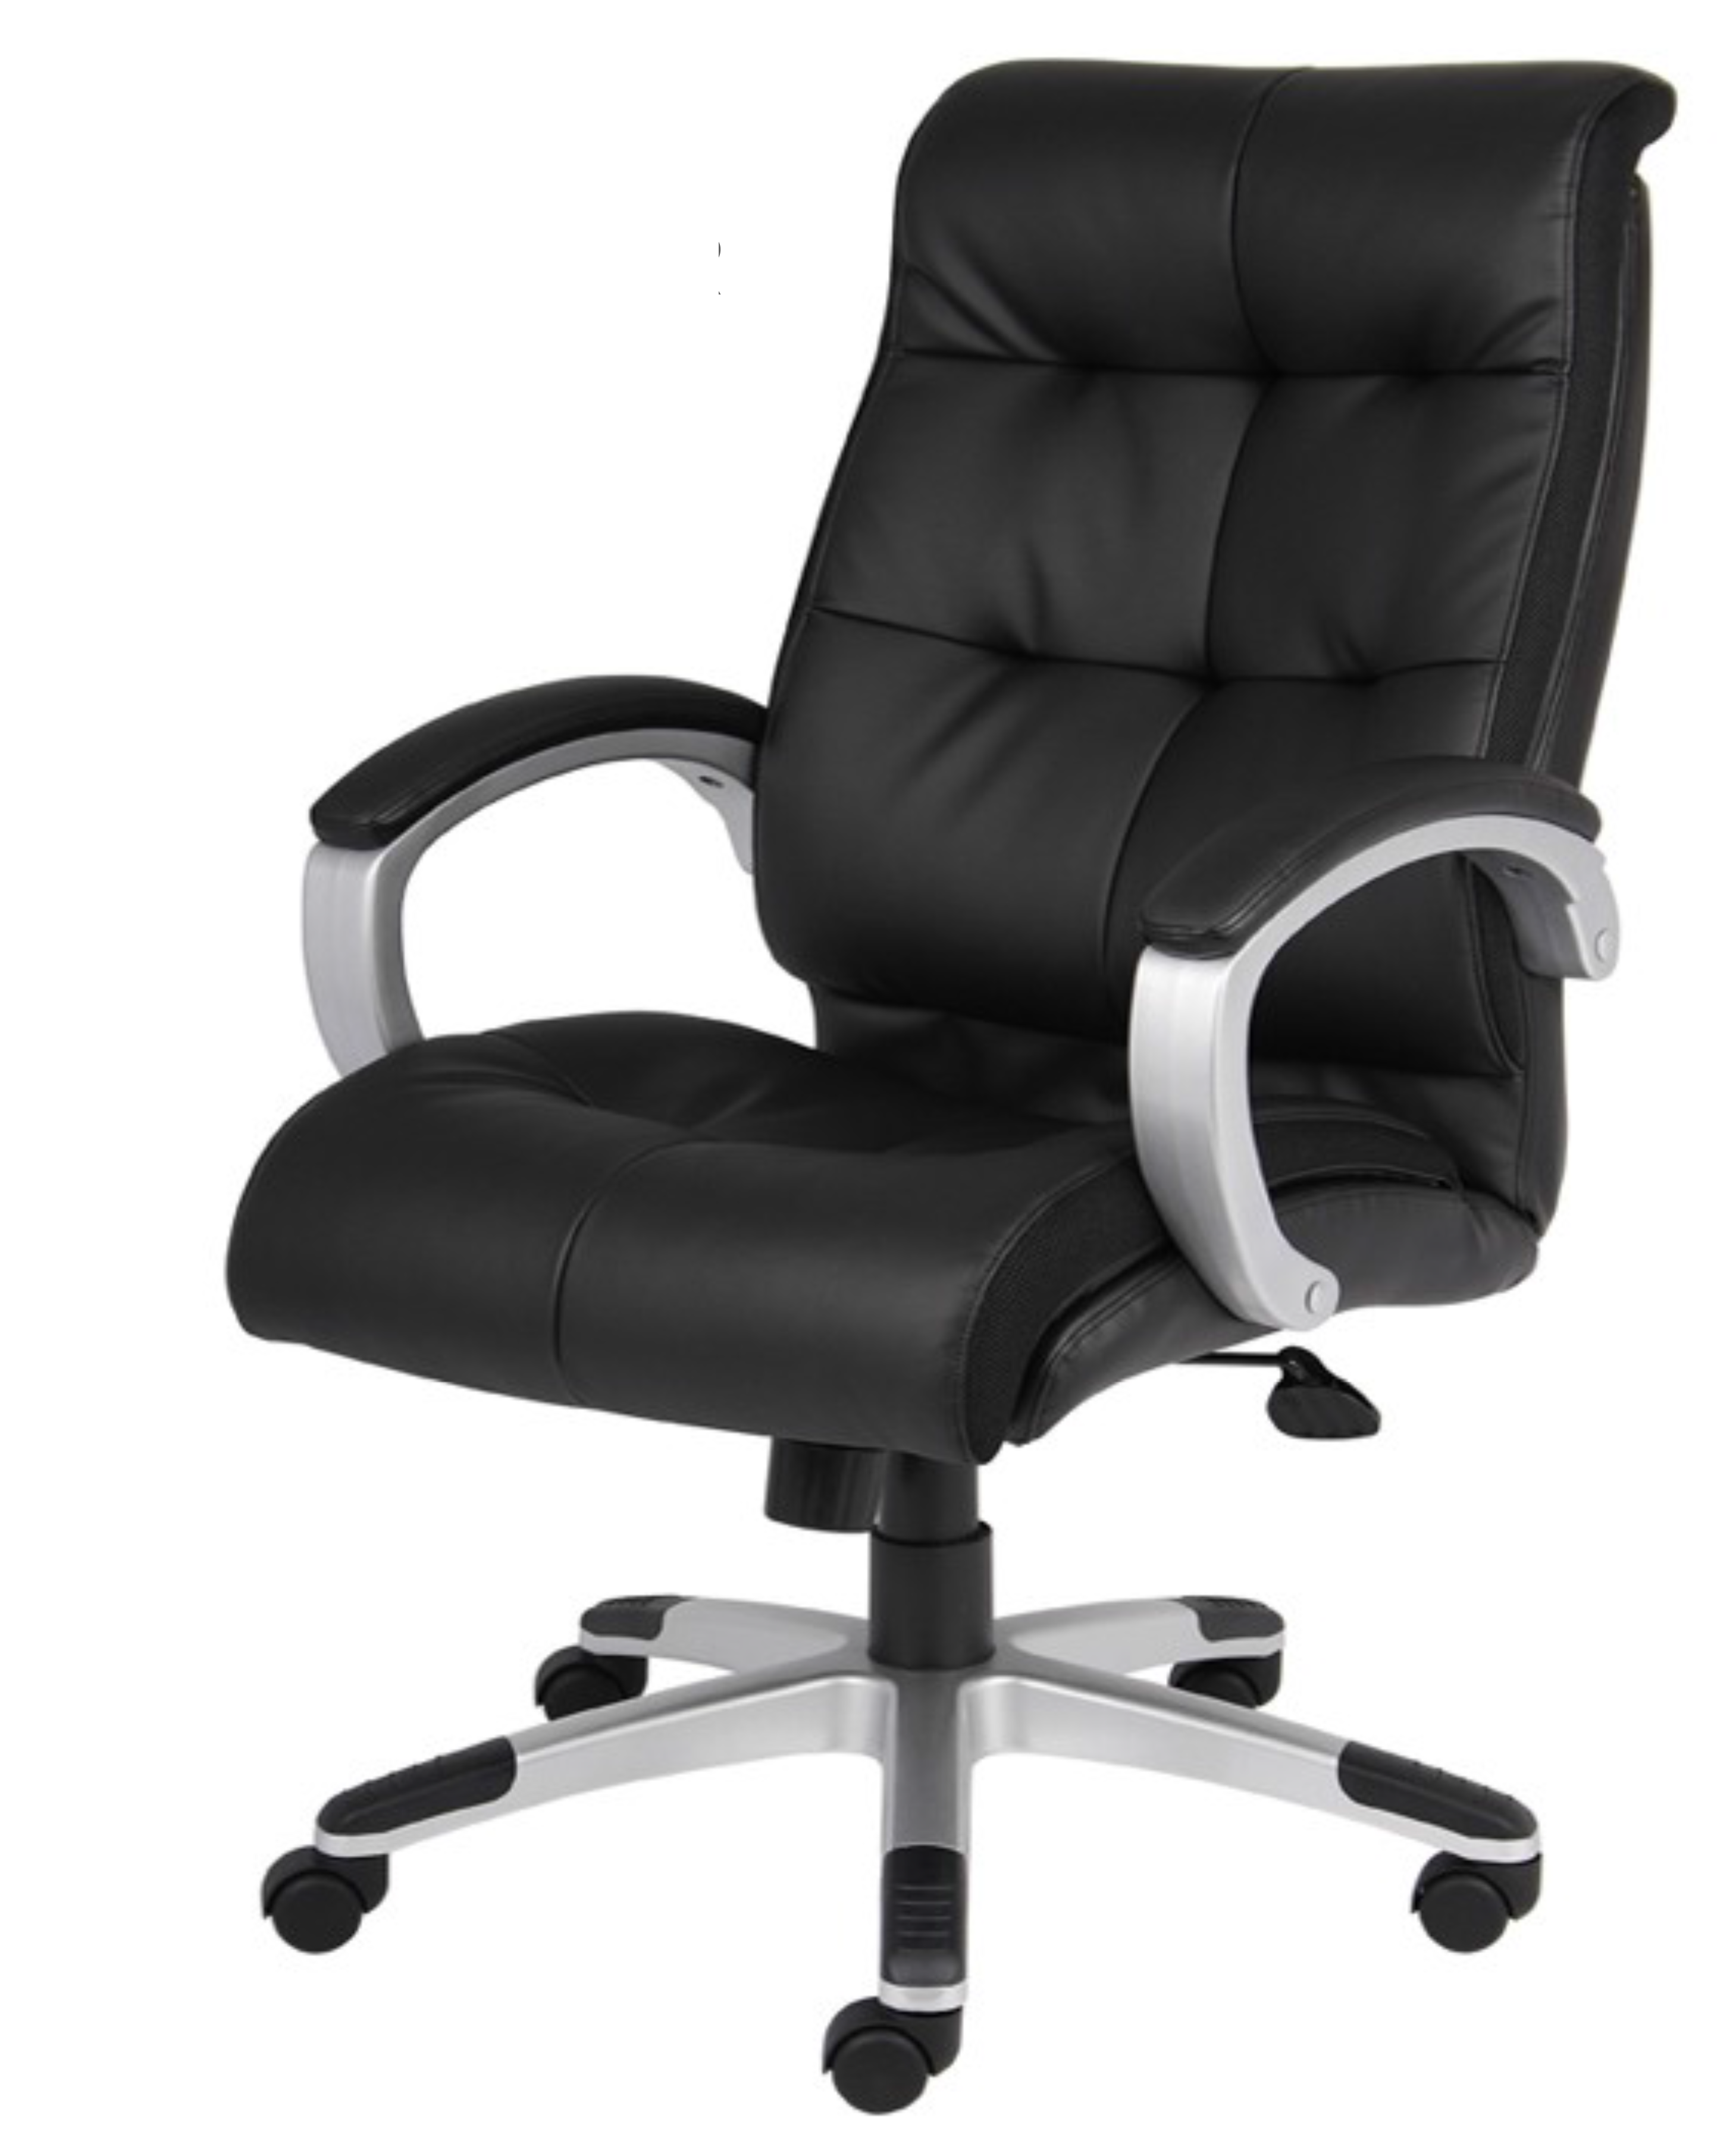 High Back Black Executive Chair With Upholstered Arm Pads, Chrome Frame And  Base